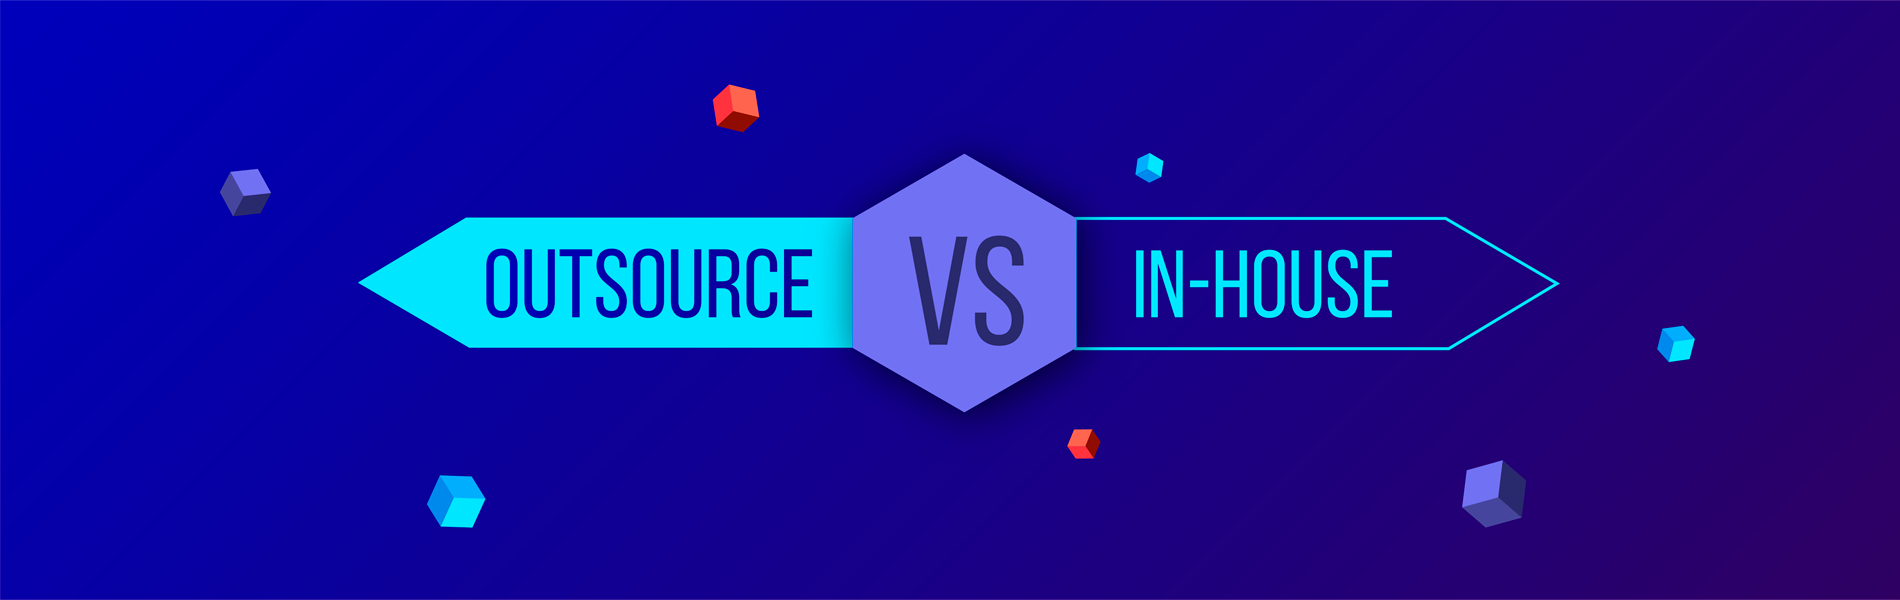 In-house or Outsource team?